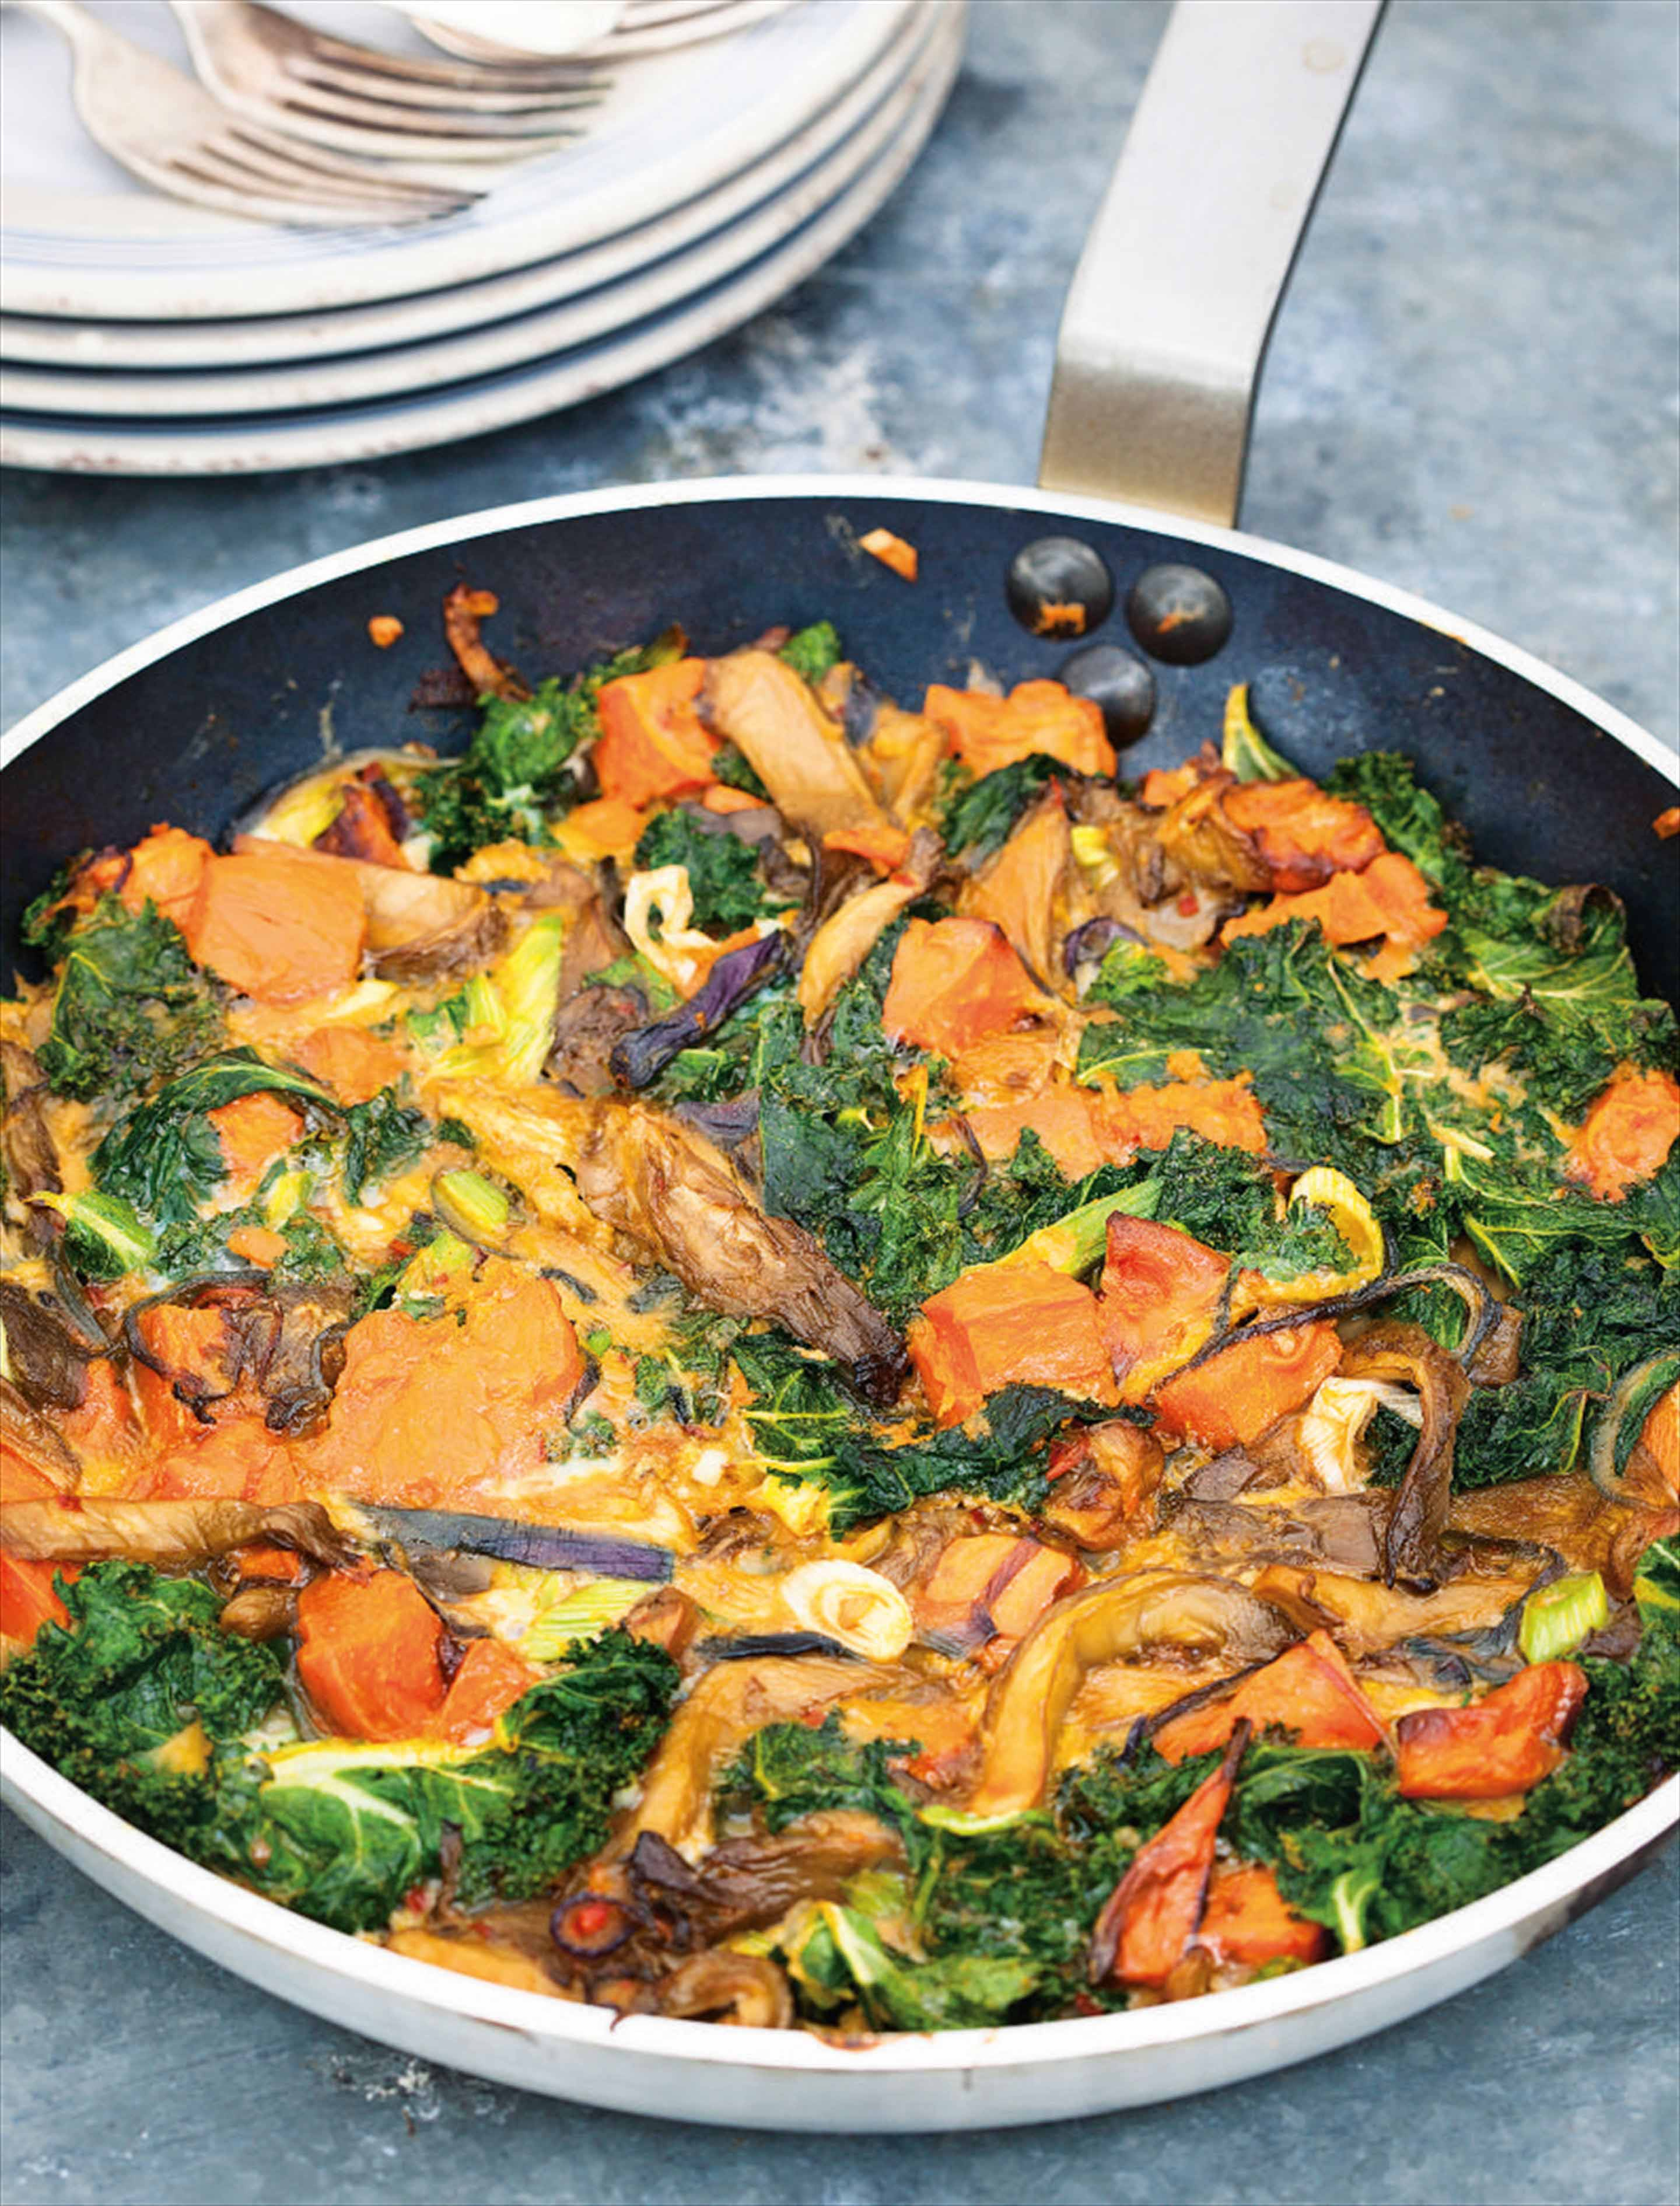 Kale, mushroom and sweet potato frittata